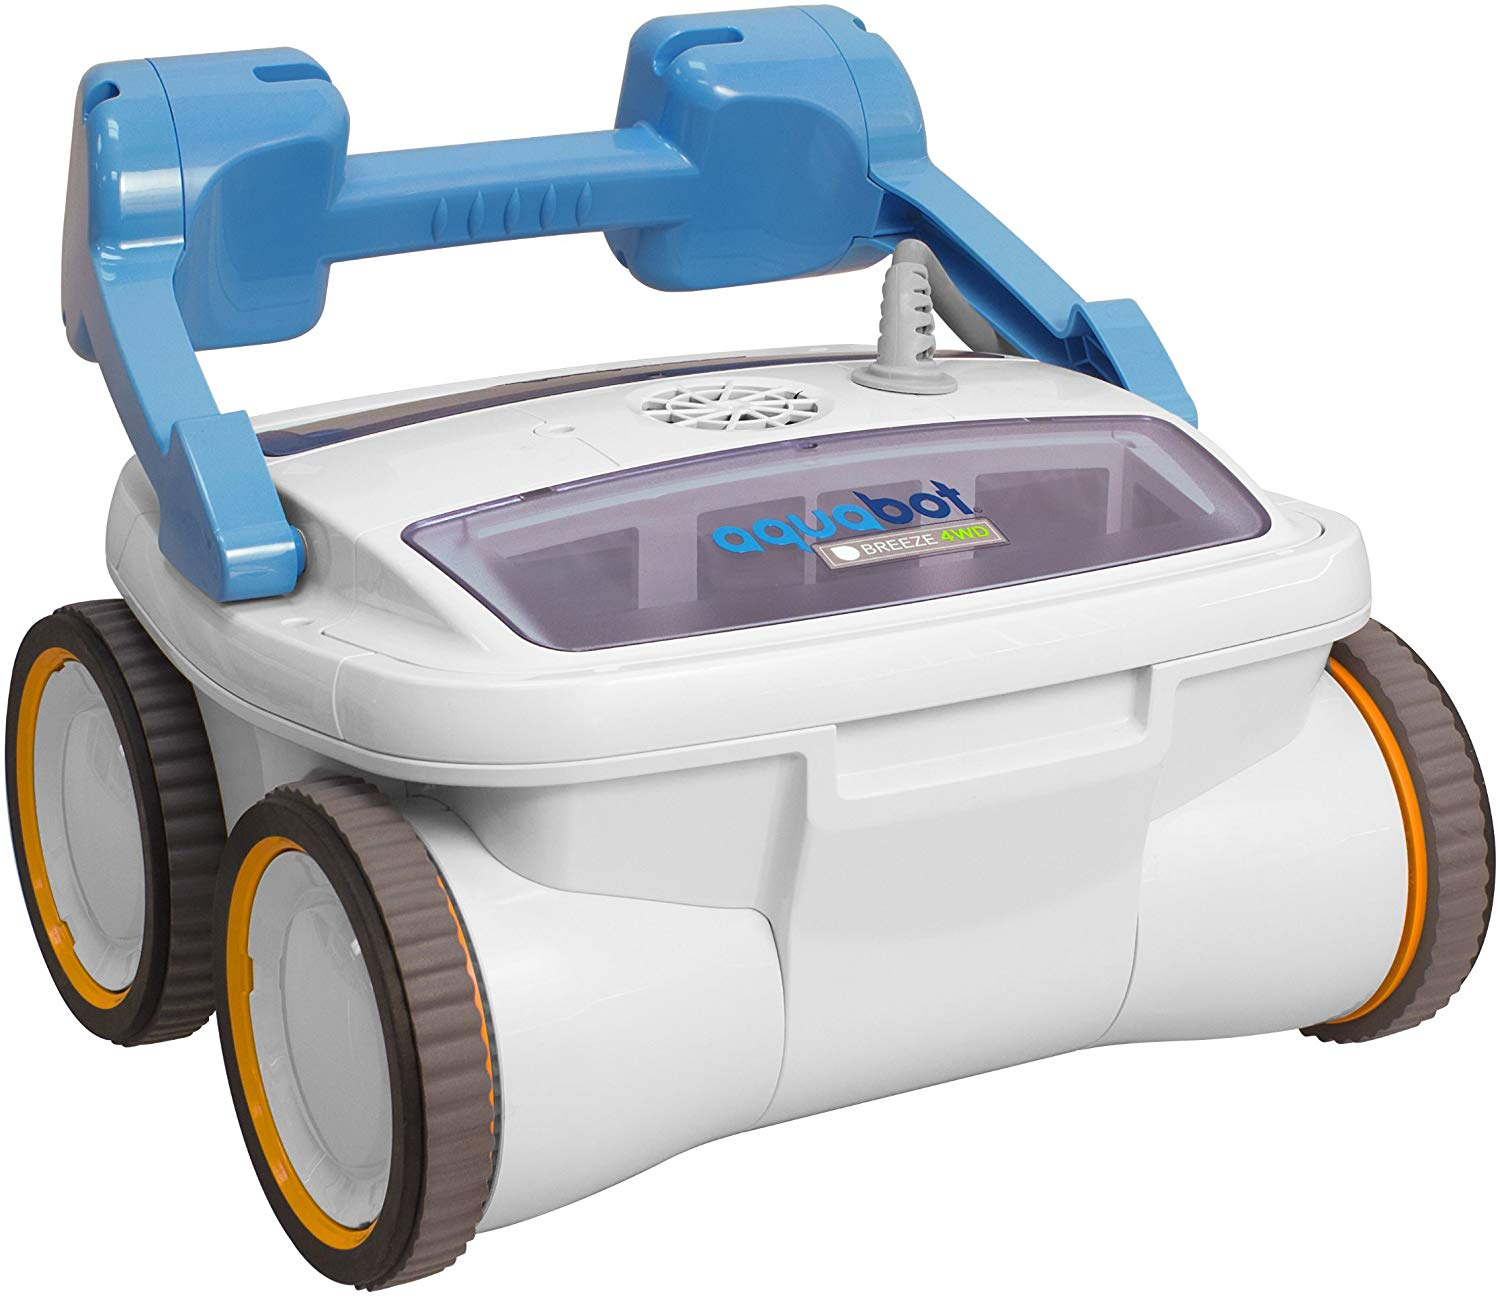 Aquabot Pool Cleaner Reviews - ABREEZ4WD Breeze 4WD Robotic